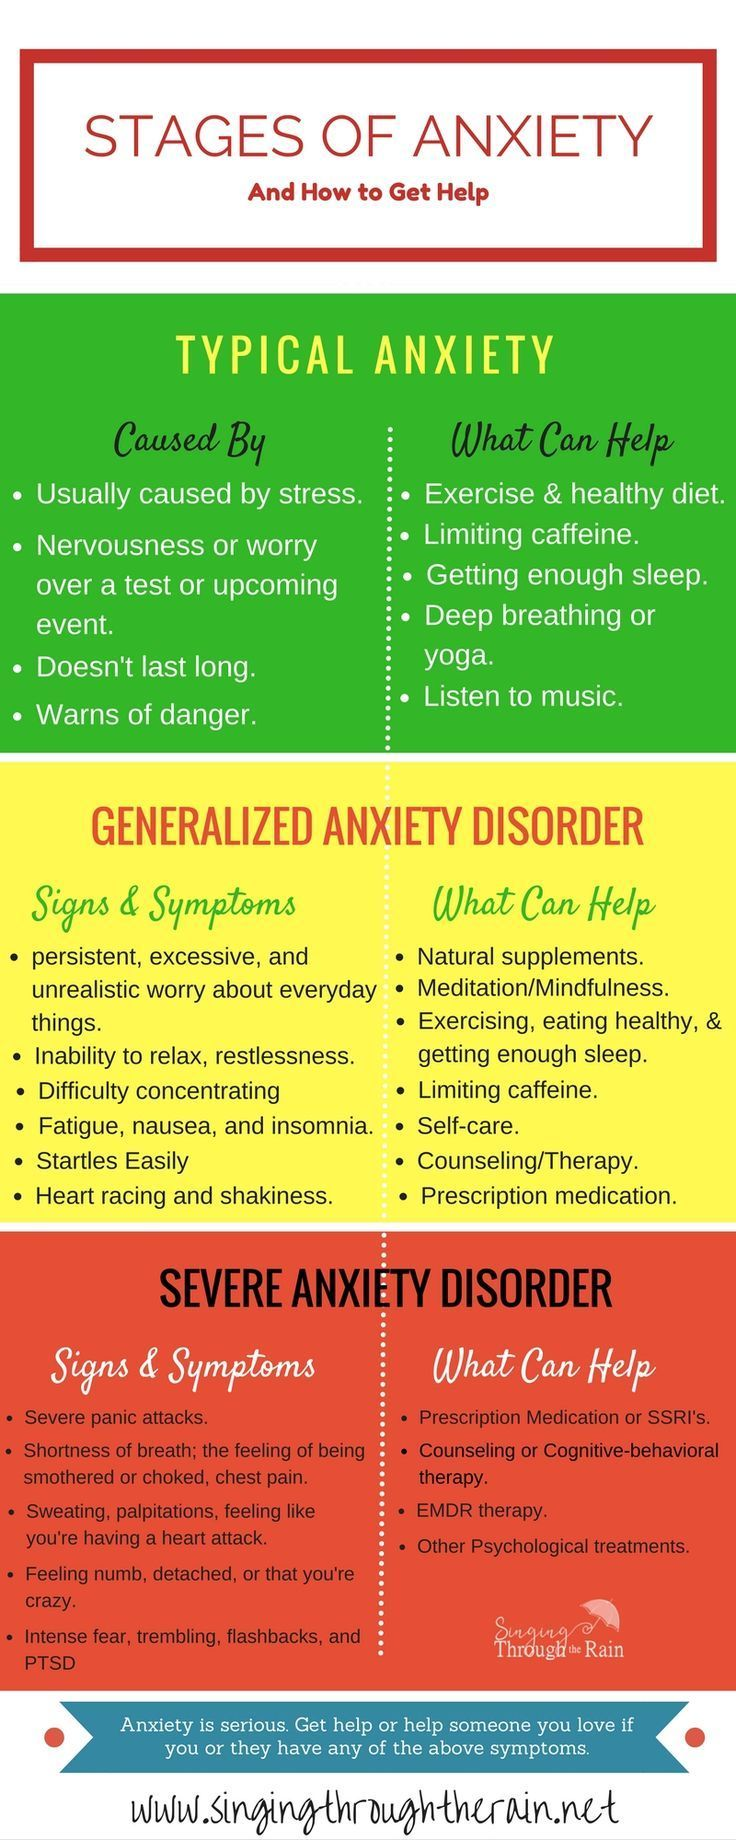 How to help someone with anxiety - The Stages Of Anxiety From Typical To Severe And How You Can Get Help